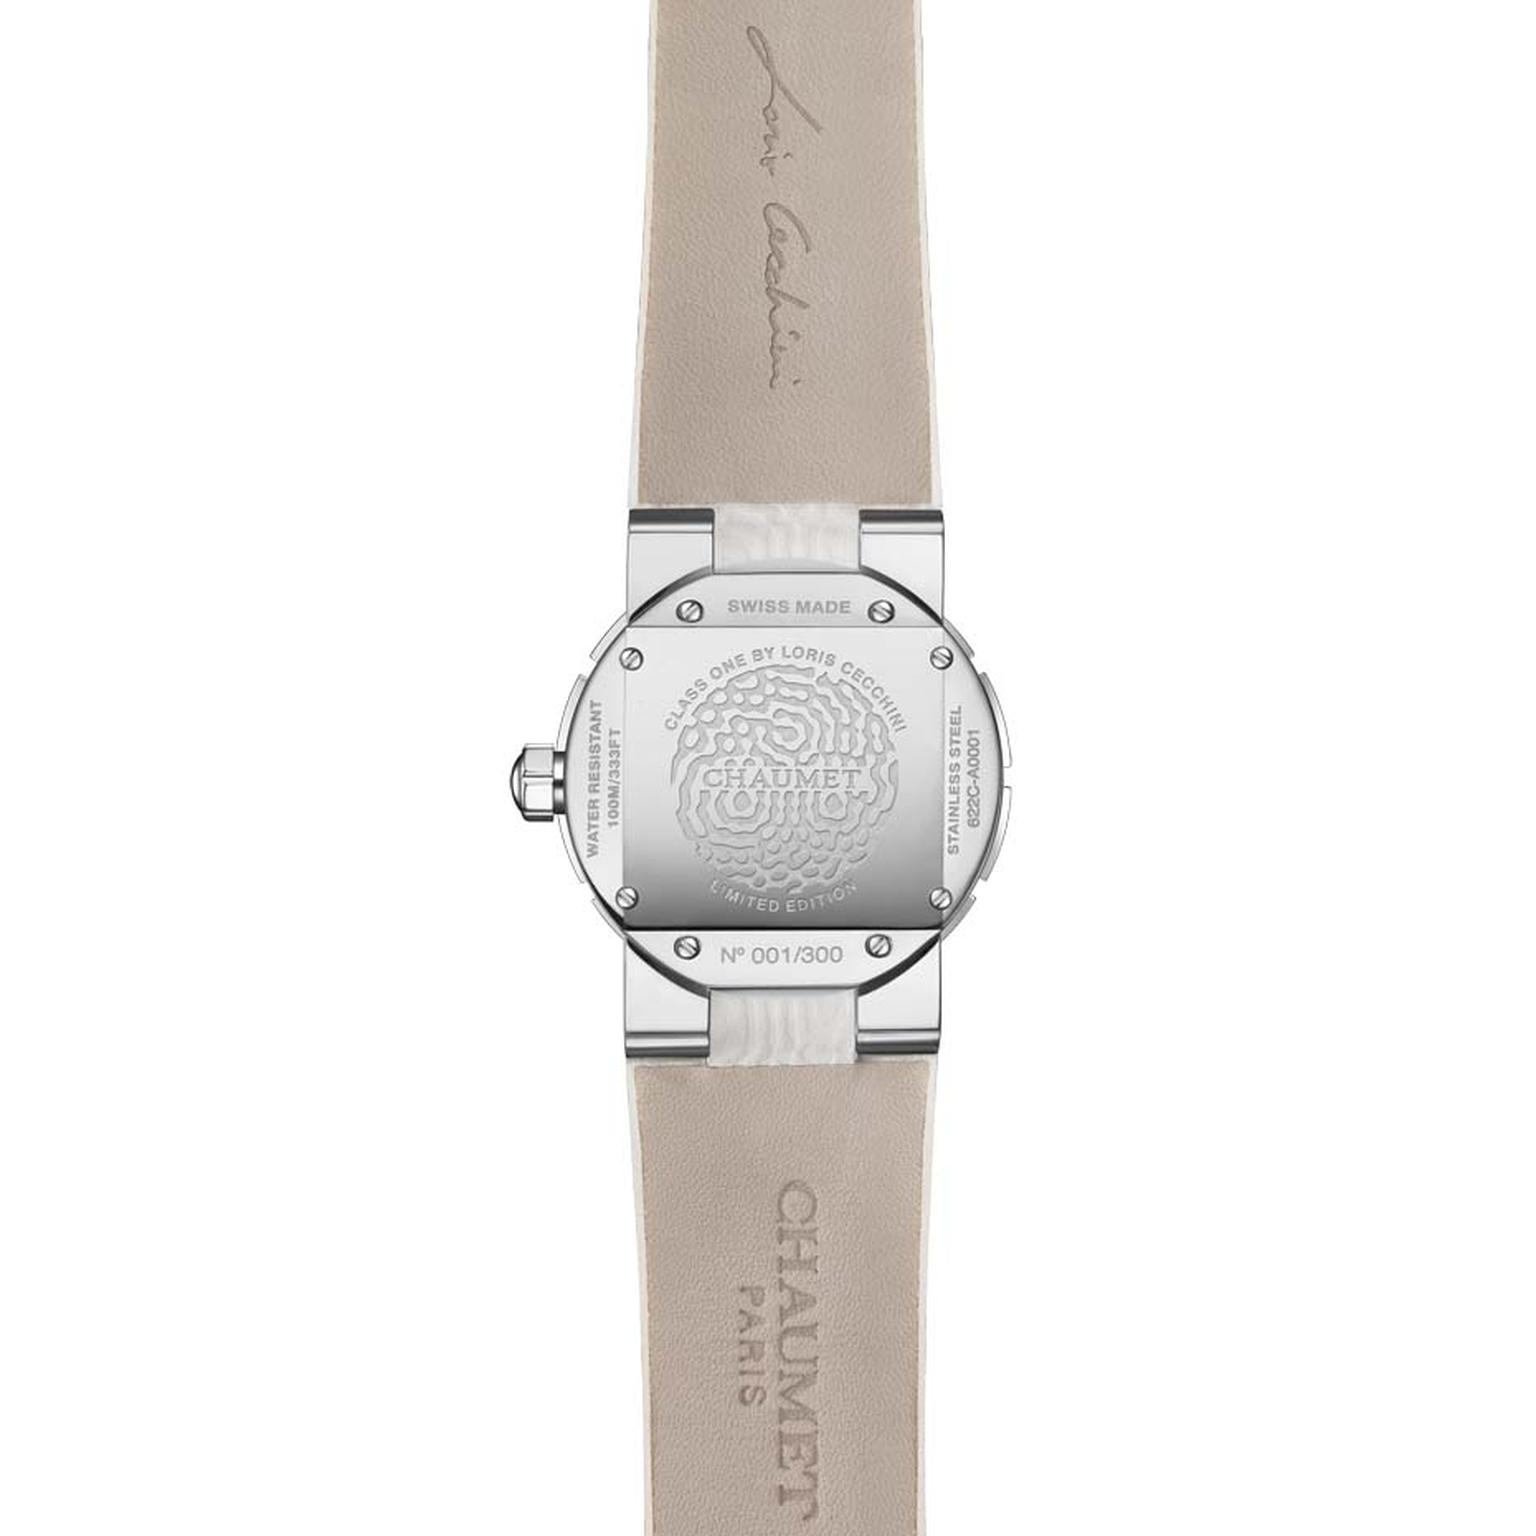 The 33mm stainless steel case has been etched with Loris Cecchini's water vibration pattern on the reverse of each of the limited-edition Chaumet Class One ladies' watches.